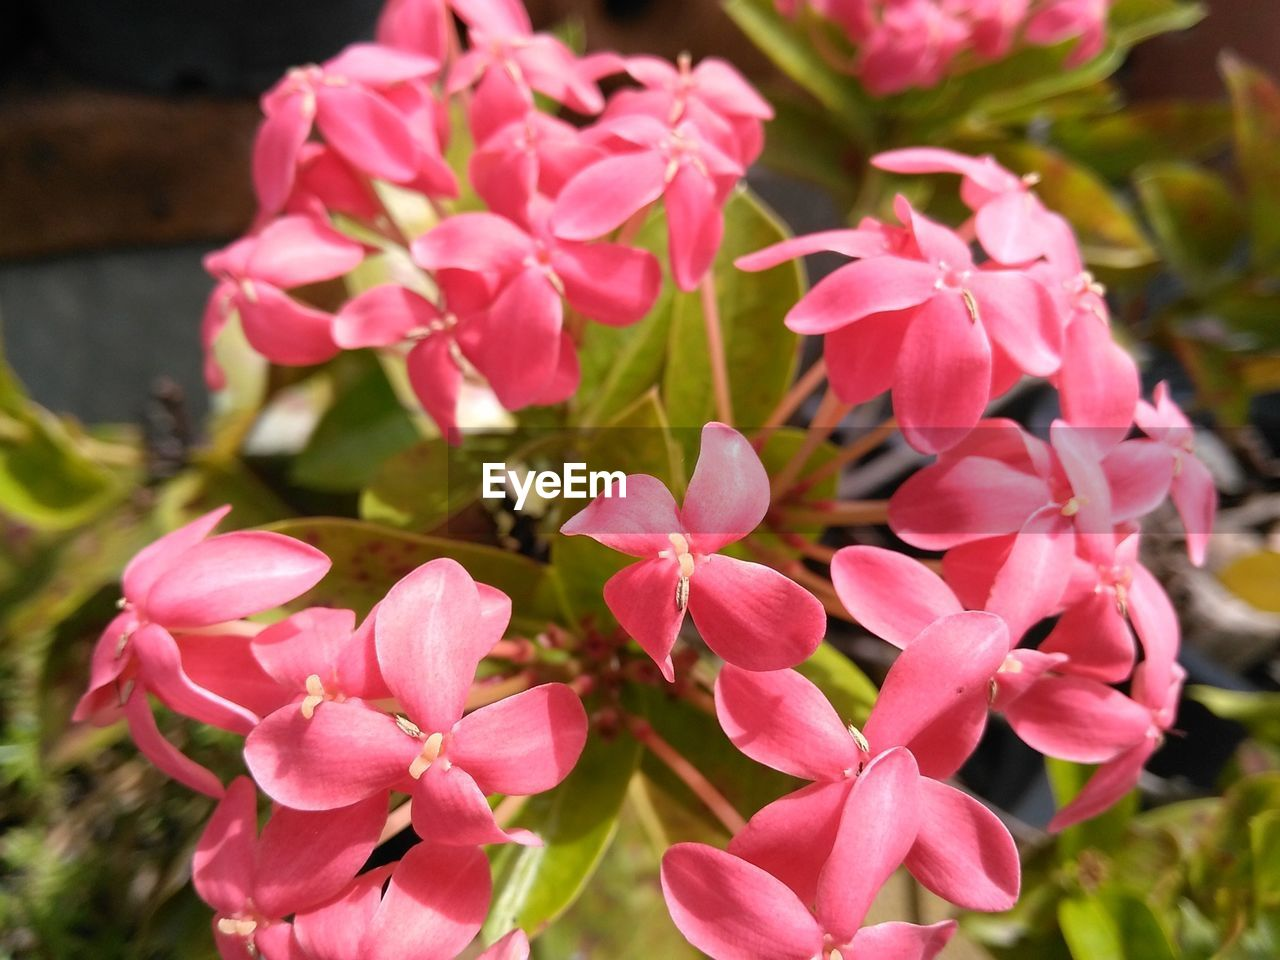 flower, pink color, petal, growth, nature, plant, beauty in nature, flower head, fragility, outdoors, blooming, no people, freshness, day, close-up, periwinkle